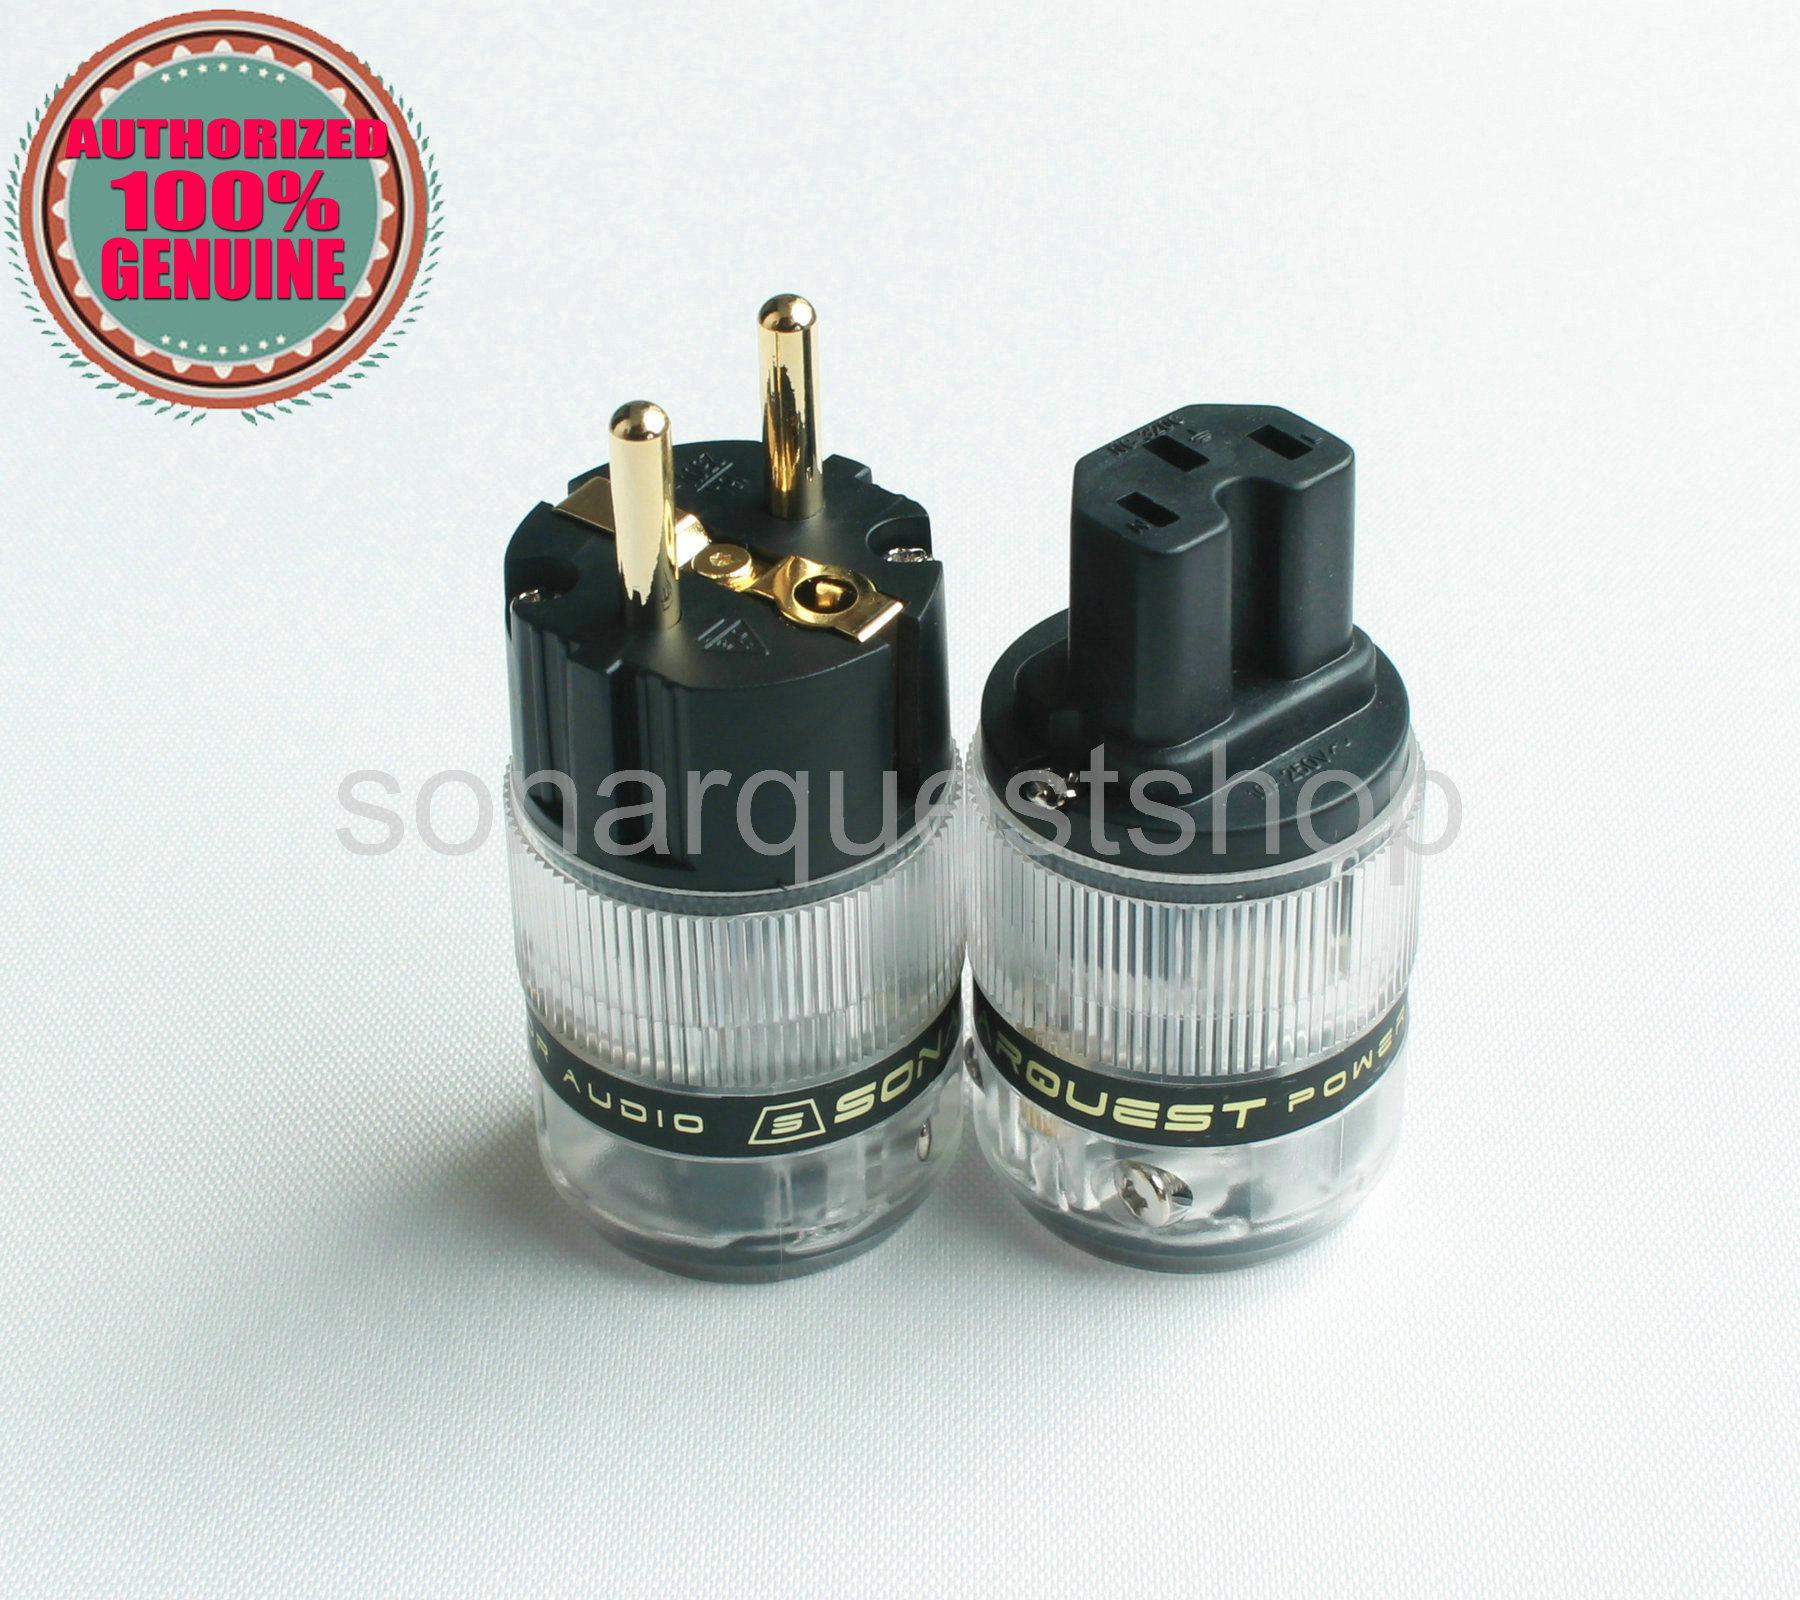 SONARQUEST ST-GE(B) + ST-GC(B) 24K Gold Plated EU Translucent Power Plug & IEC Connector